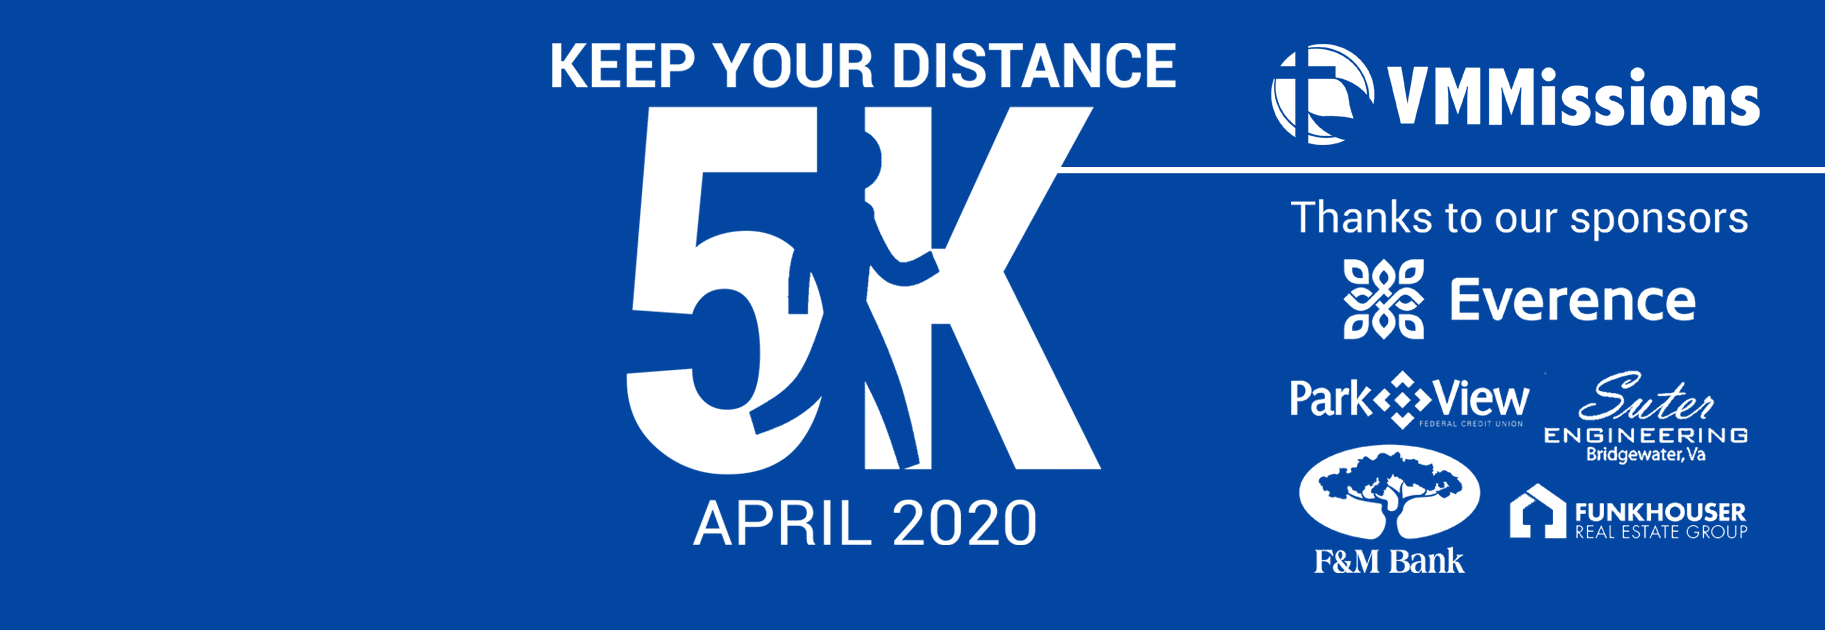 Keep Your Distance 5K